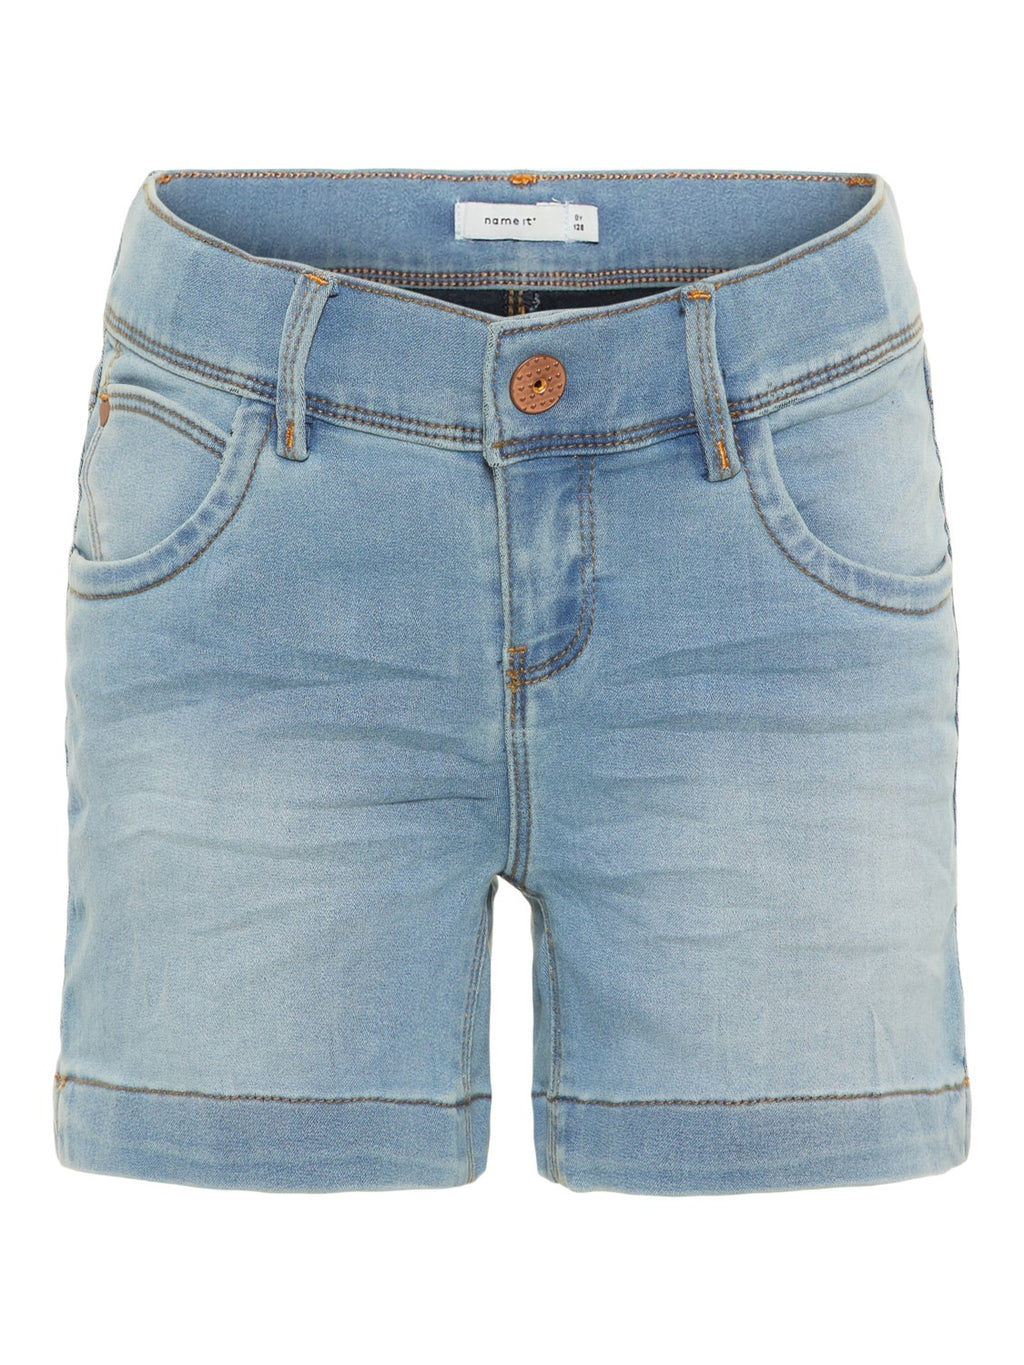 Name it : Lichte jeansshort Short Outlet Kamélie.be